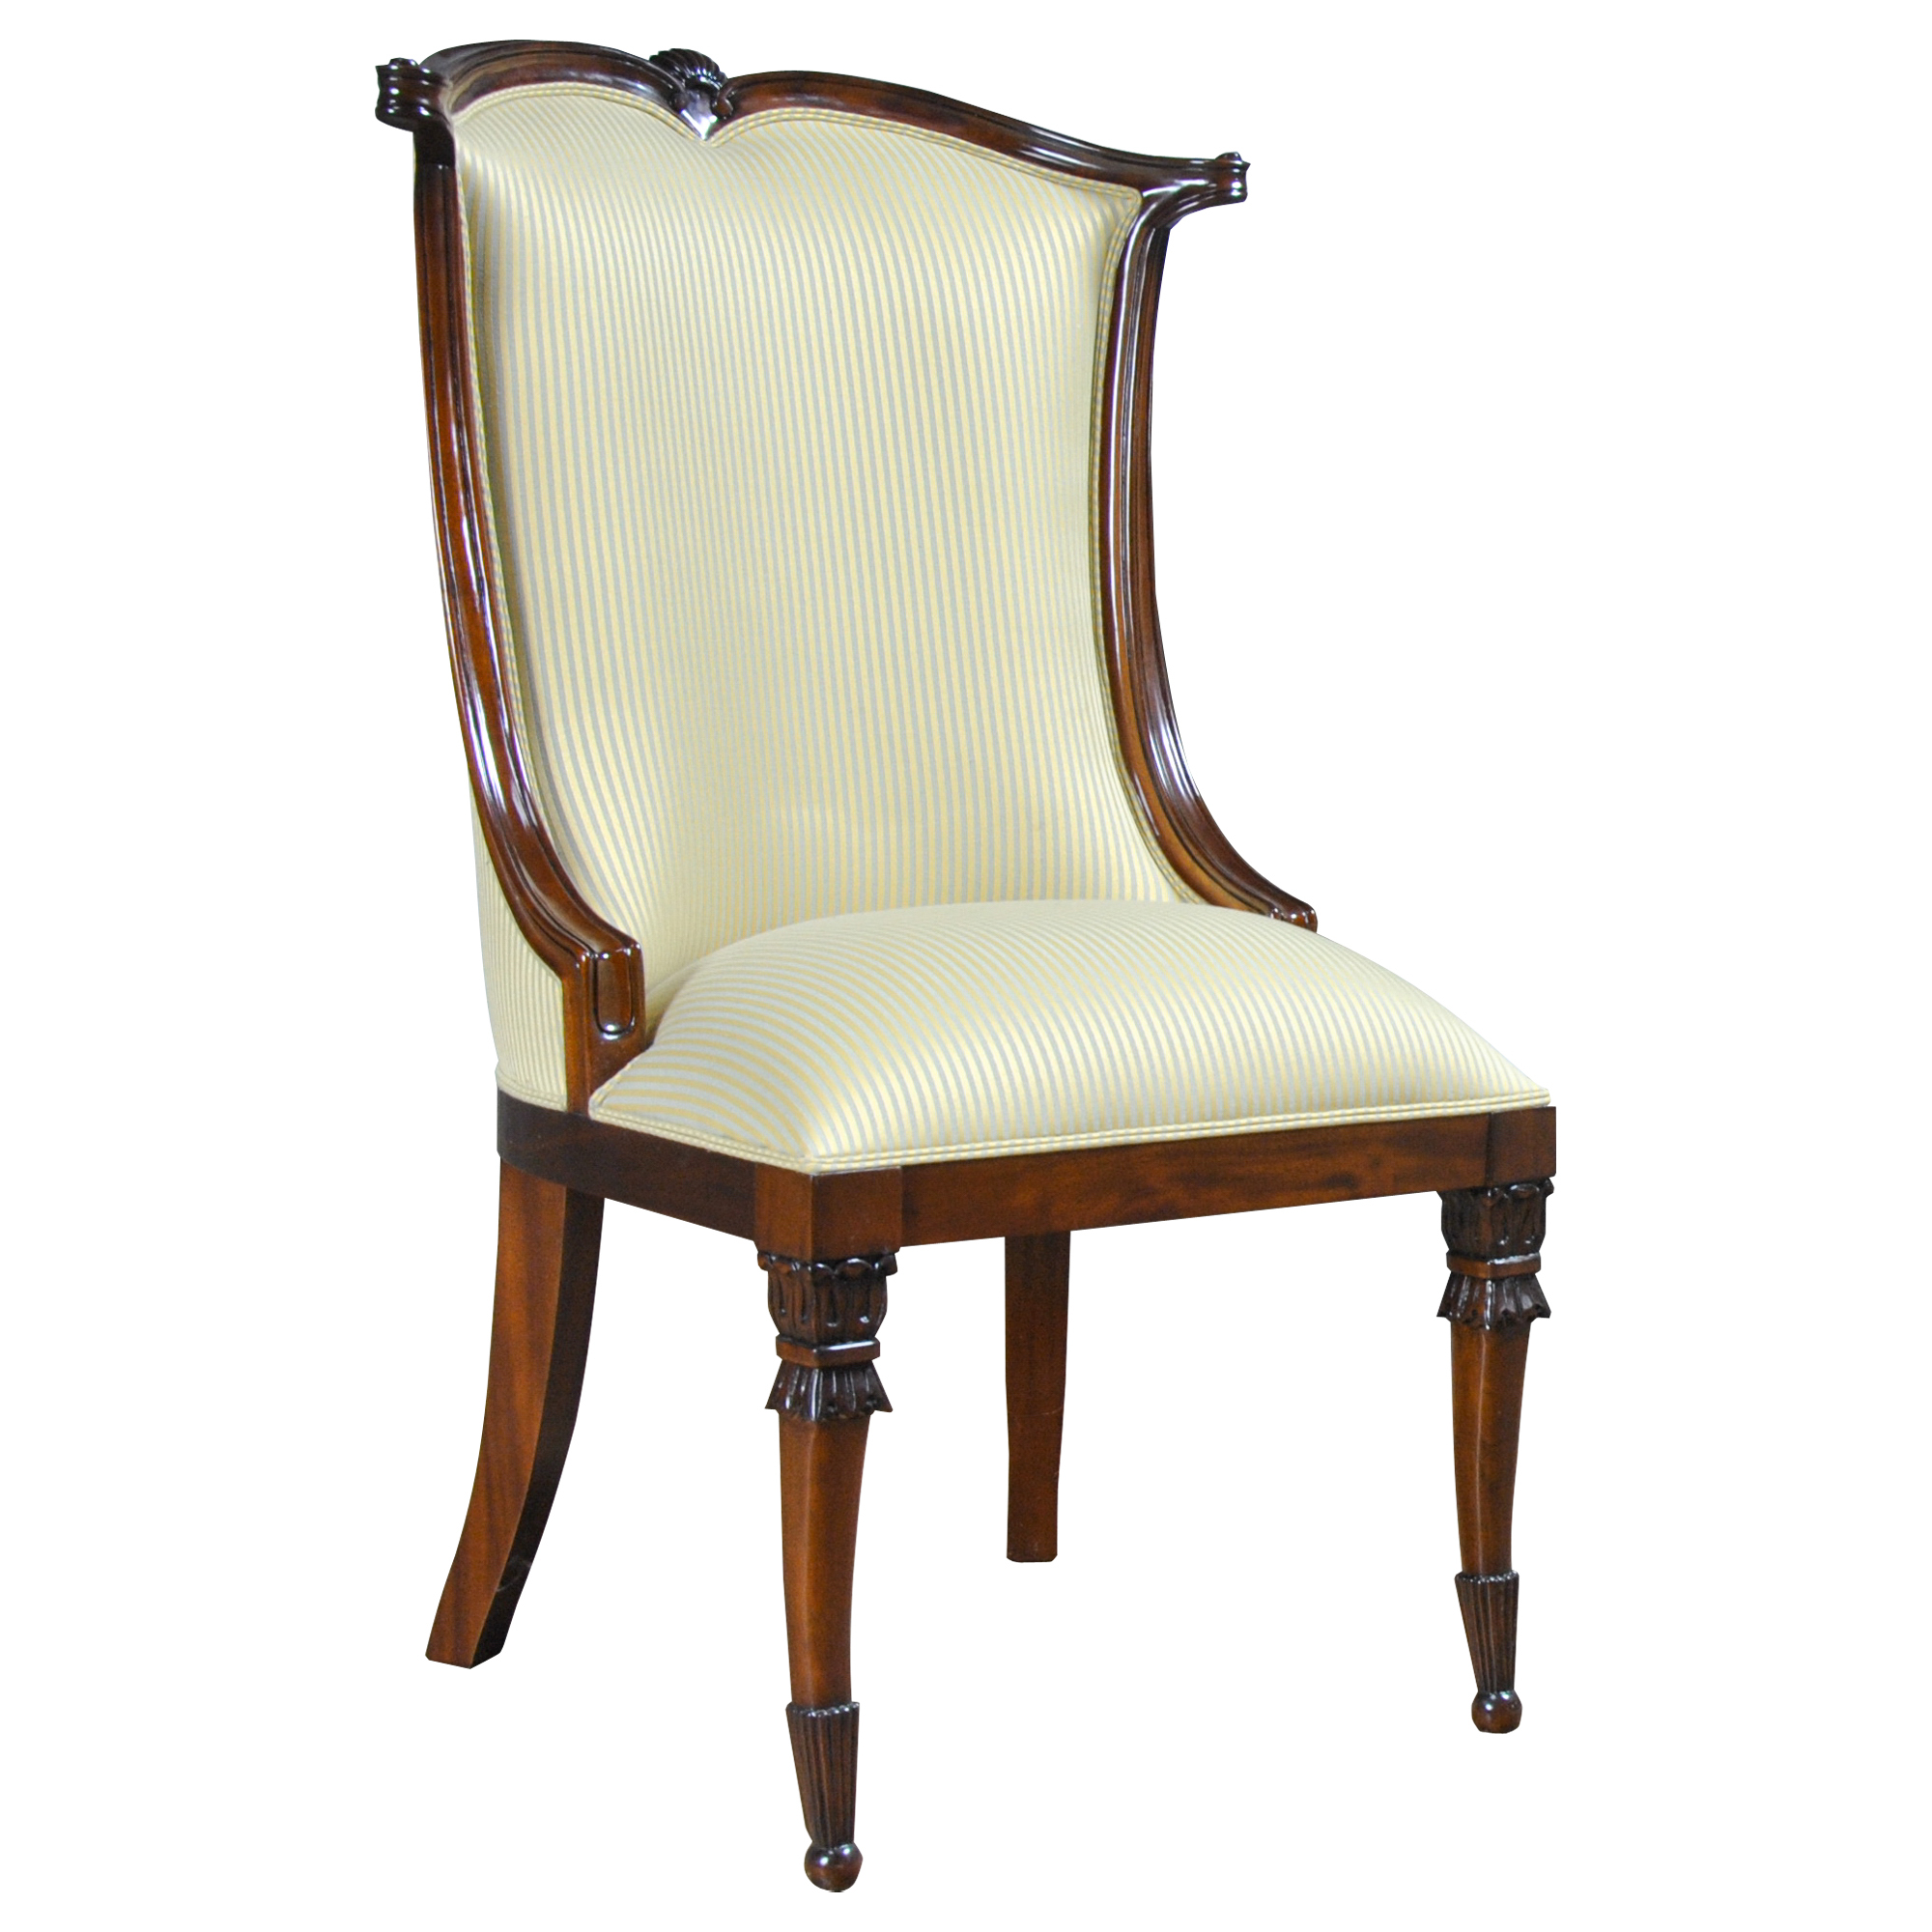 american furniture chairs best recliner chair for sleeping upholstered side niagara high end